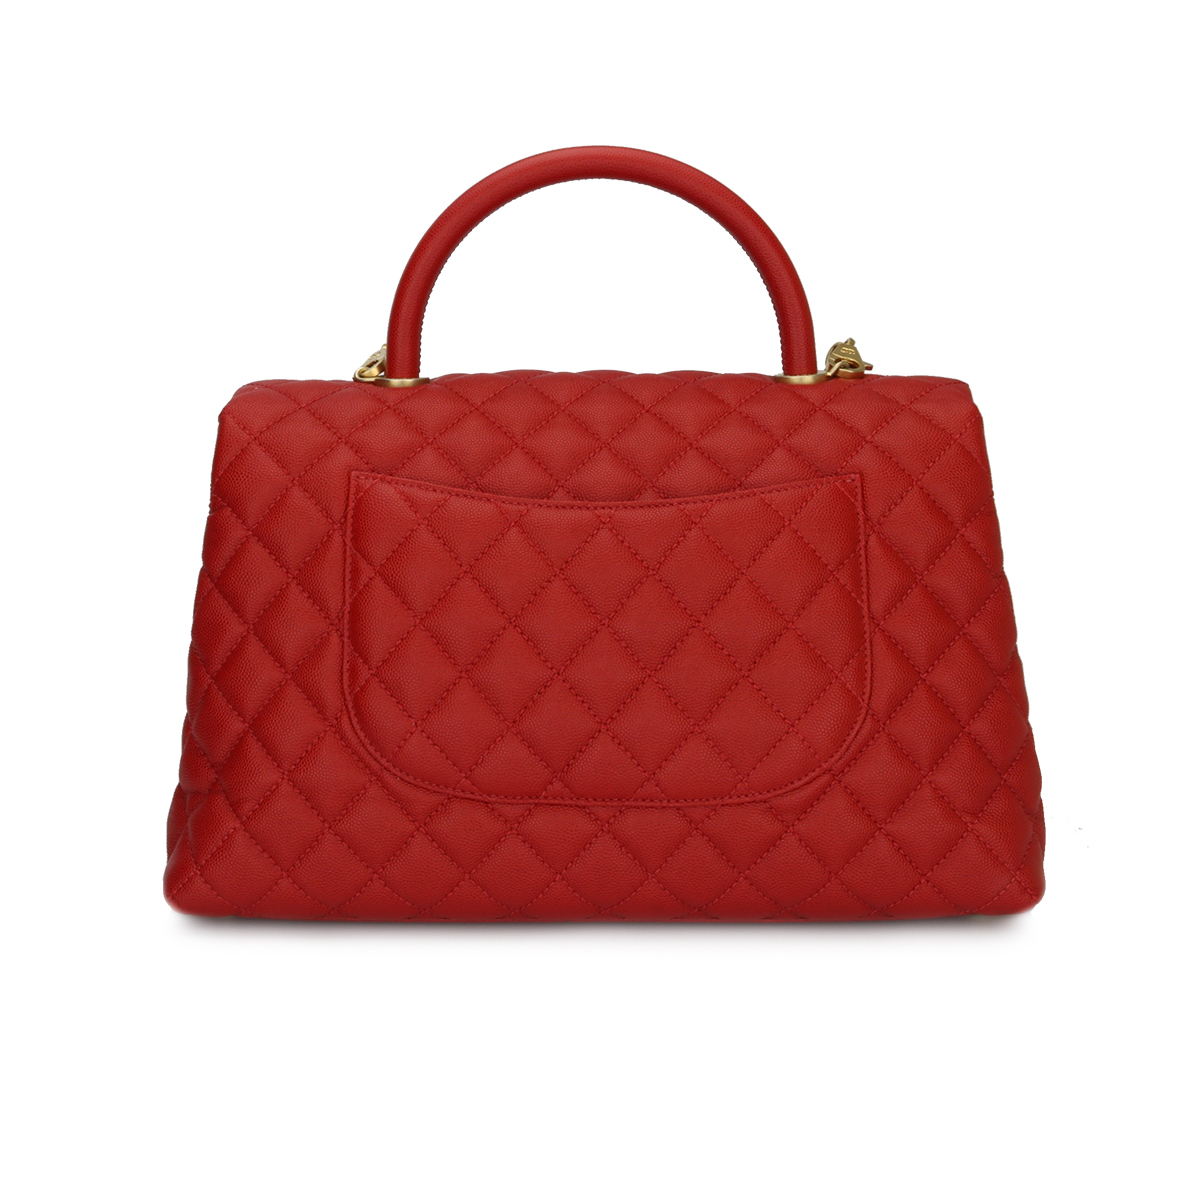 Chanel Coco Handle Large Red Caviar Brushed Gold Hardware